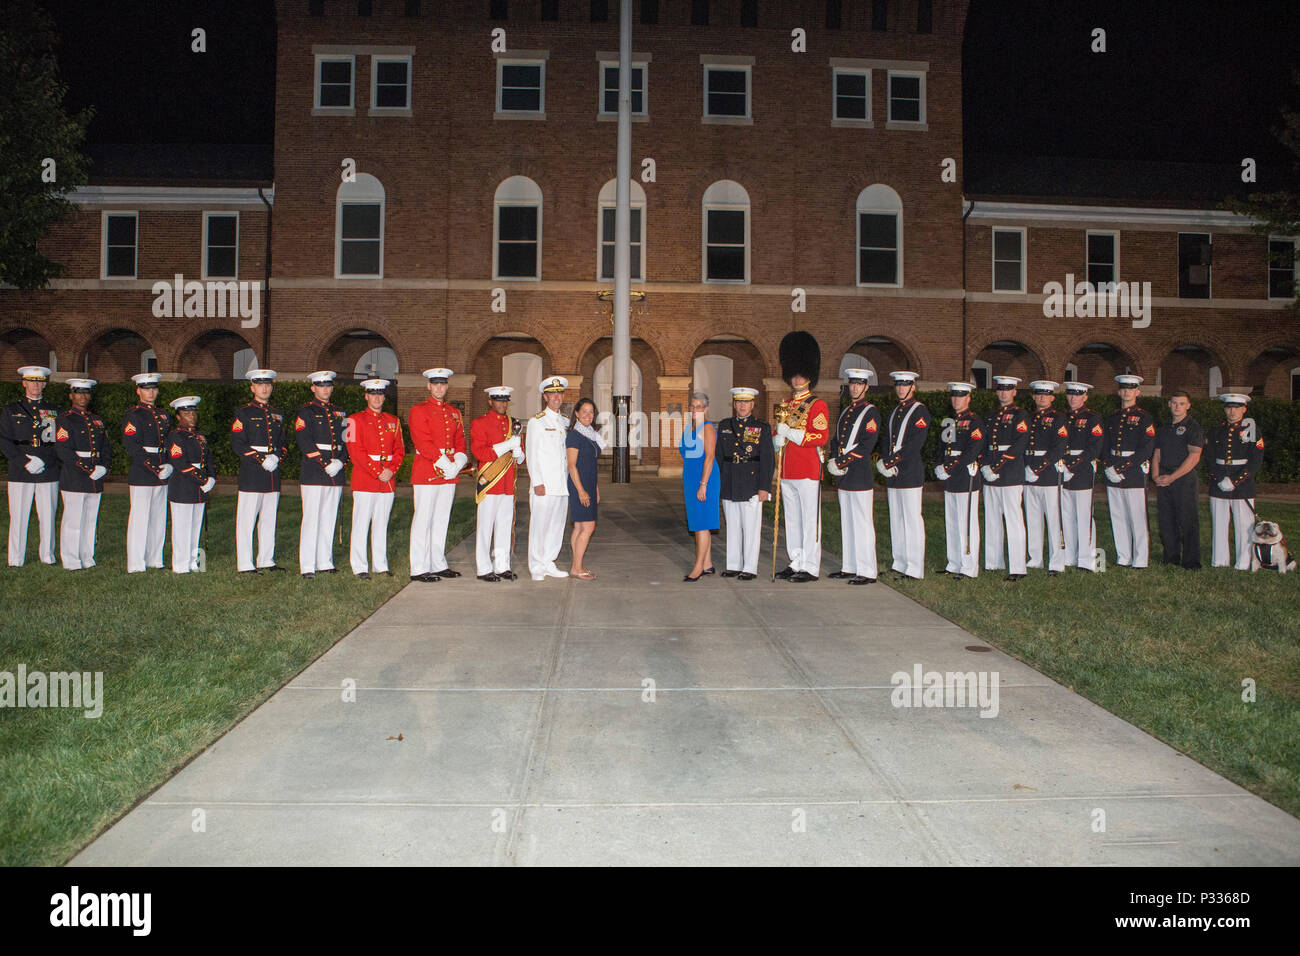 Chief of Naval Operations Adm. John M. Richardson and his wife, Dana Richardson, center left, pose for a photo with the Commandant of the Marine Corps Gen. Robert B. Neller, his wife, D'arcy Neller, and Marines from Marine Barracks Washington after the evening parade at Marine Barracks Washington, Washington D.C., Aug. 19, 2016. Evening parades are held as a means of honoring senior officials, distinguished citizens and supporters of the Marine Corps. (U.S. Marine Corps photo by Lance Cpl. Stephon L. McRae) Stock Photo